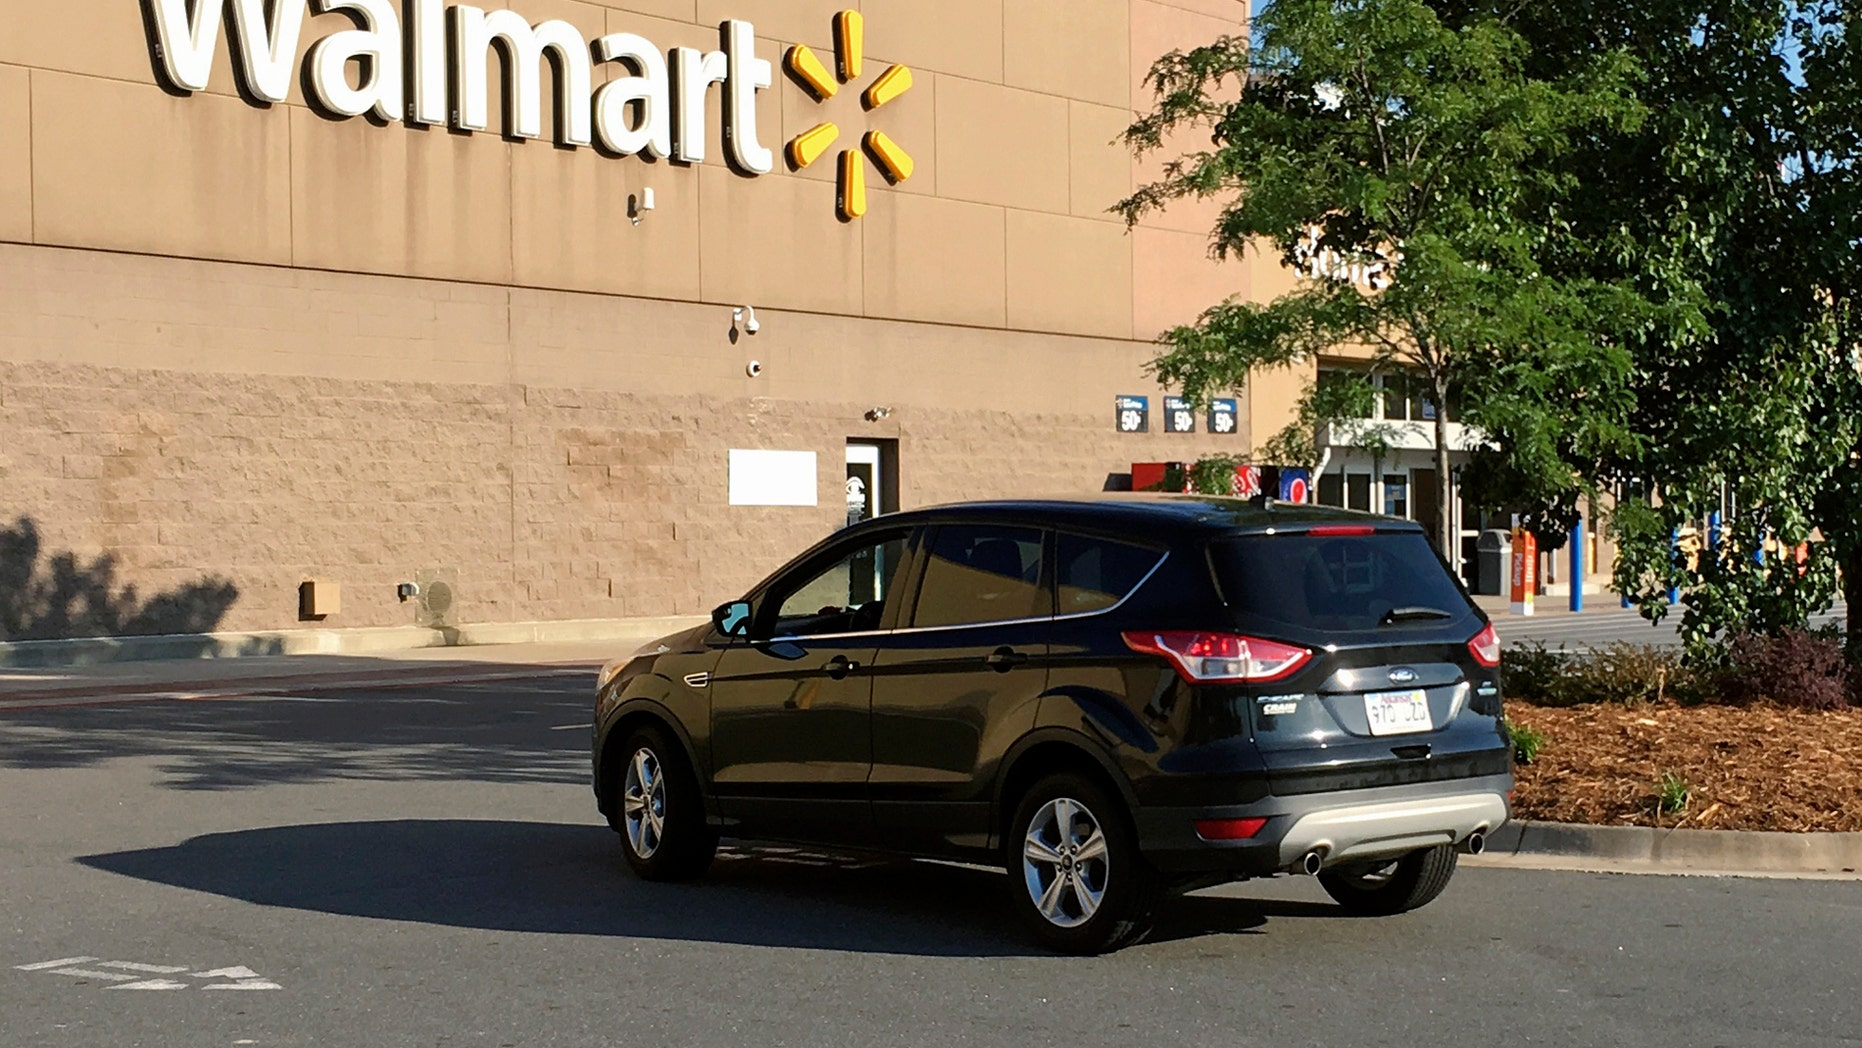 A motorist drives through a Walmart parking lot in west Little Rock, Ark., Wednesday, June 28, 2017. The company was hosting hundreds of potential vendors at its Bentonville headquarters on Wednesday, searching for products to someday stock on store shelves. (AP Photo/Kelly P. Kissel)